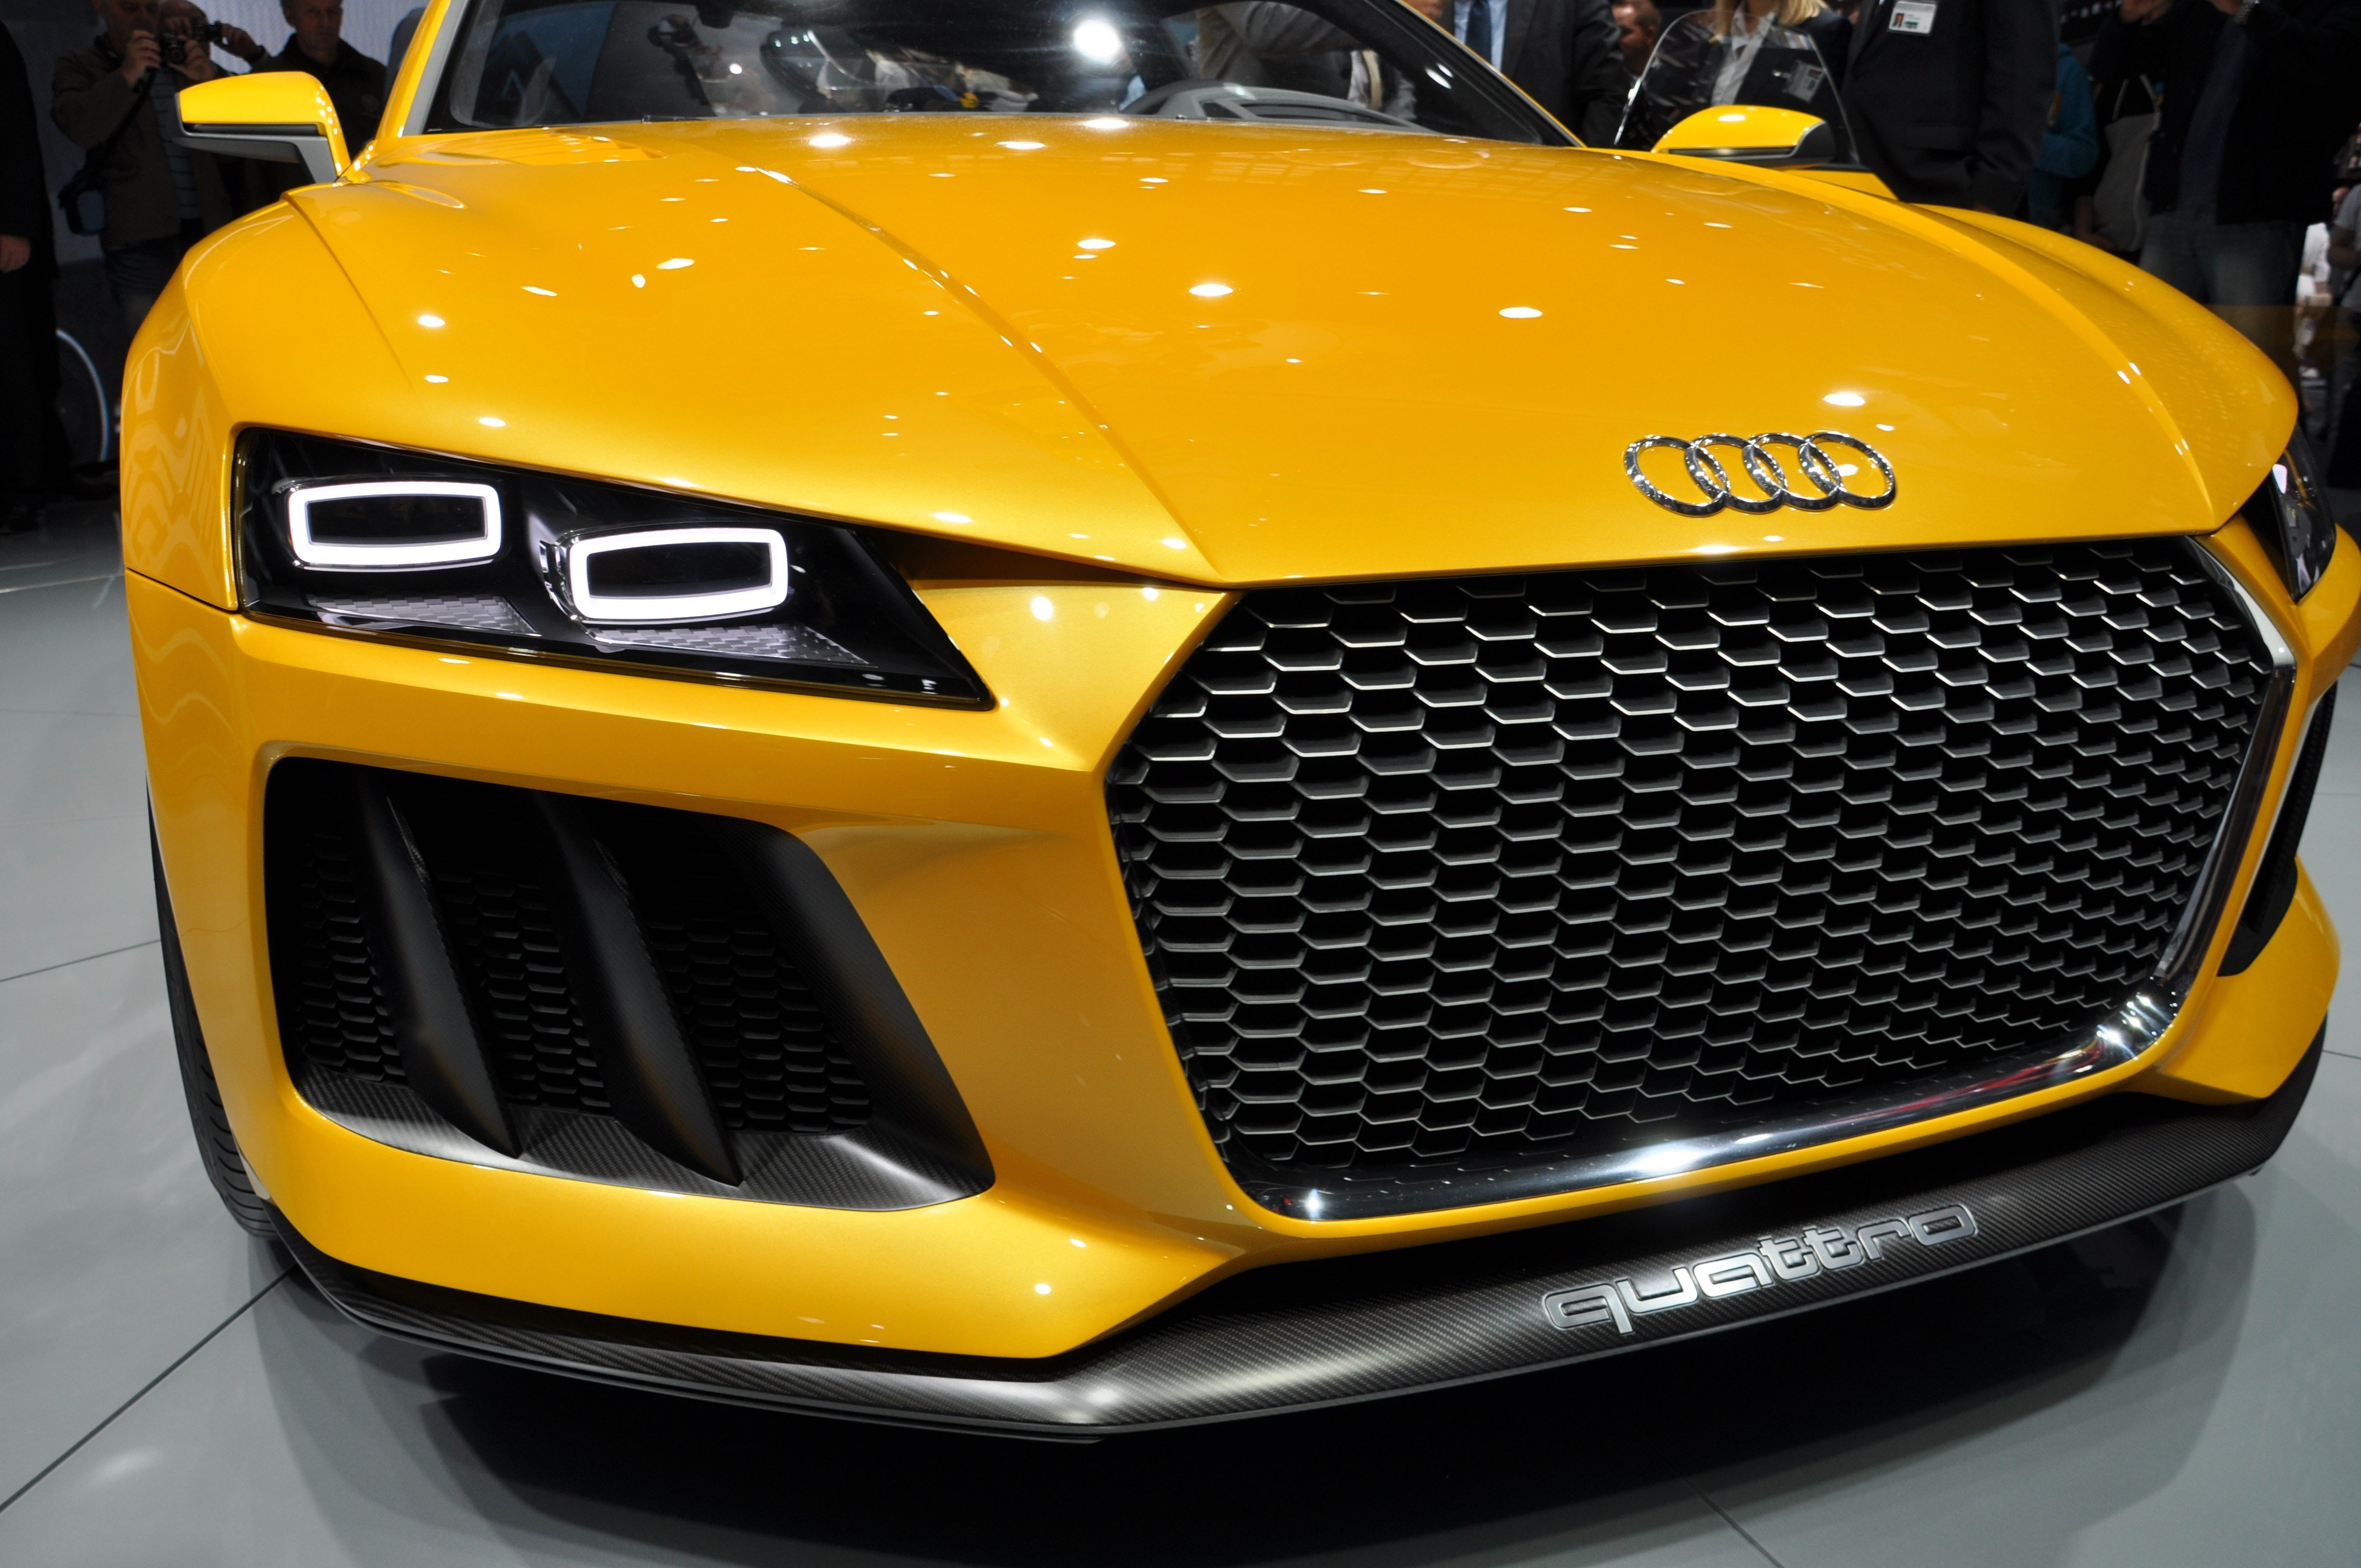 Latest Audi Car Yellow Cars Wallpapers Hd Desktop And Mobile Free Download